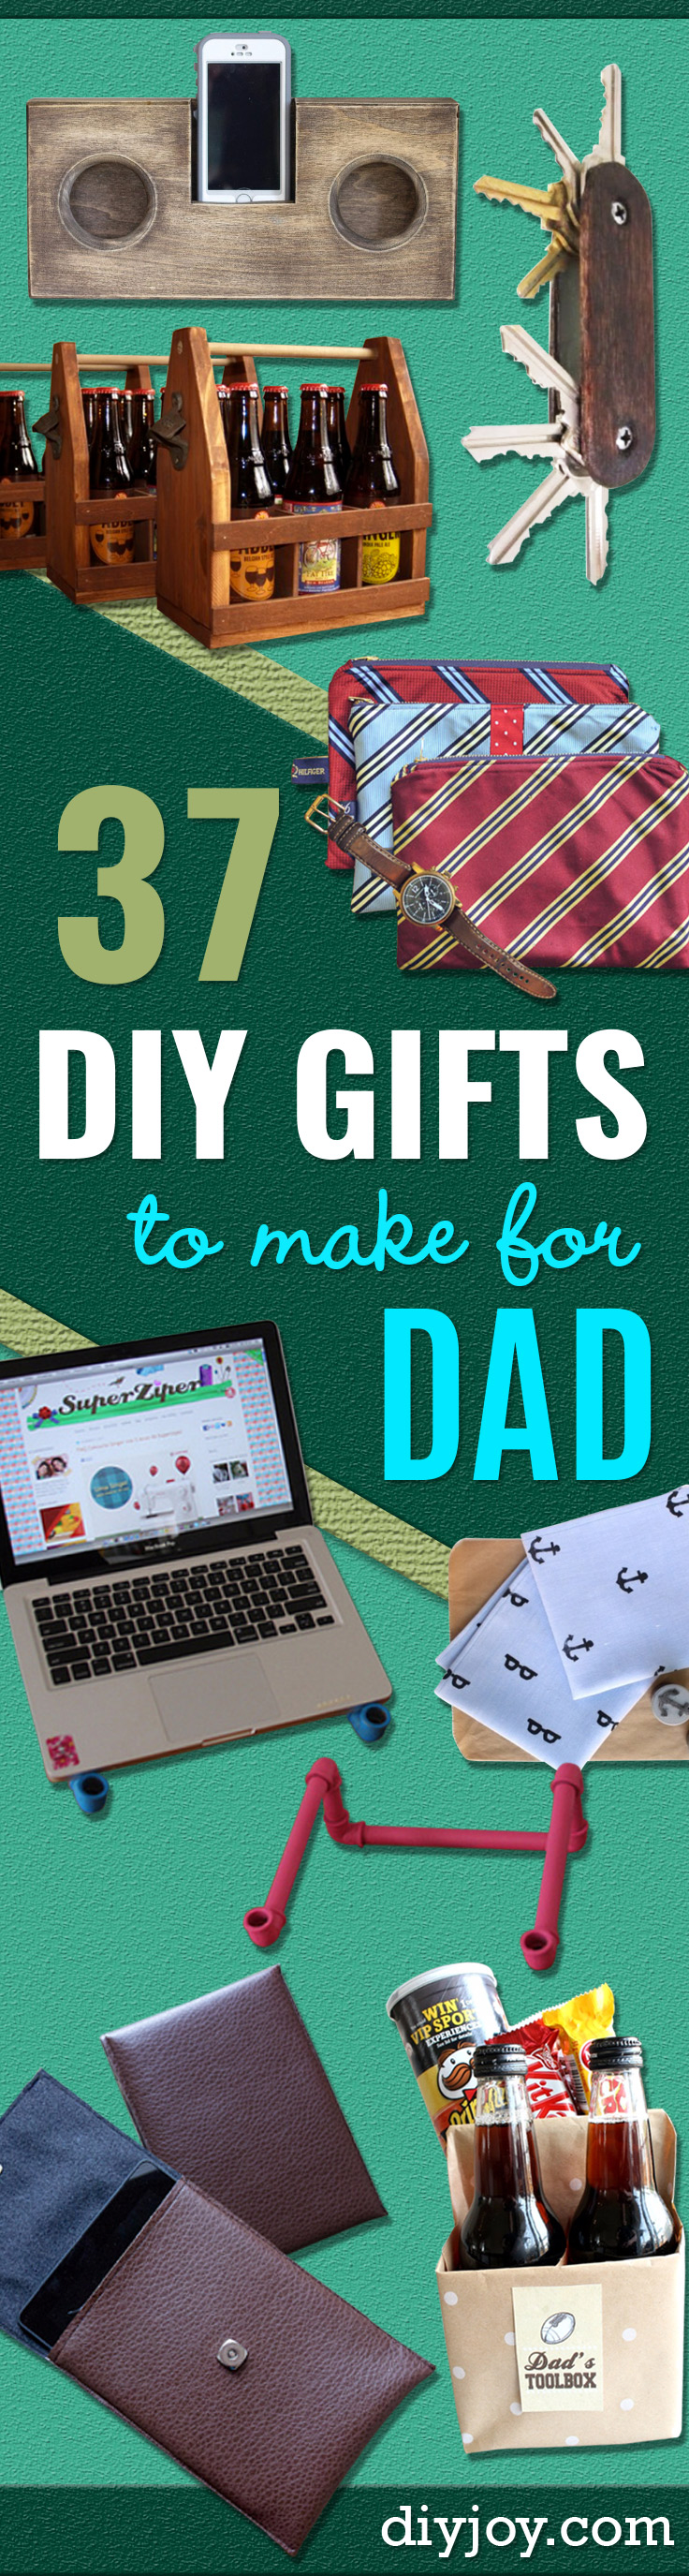 37 awesome diy gifts to make for dad for Last minute diy birthday gifts for dad